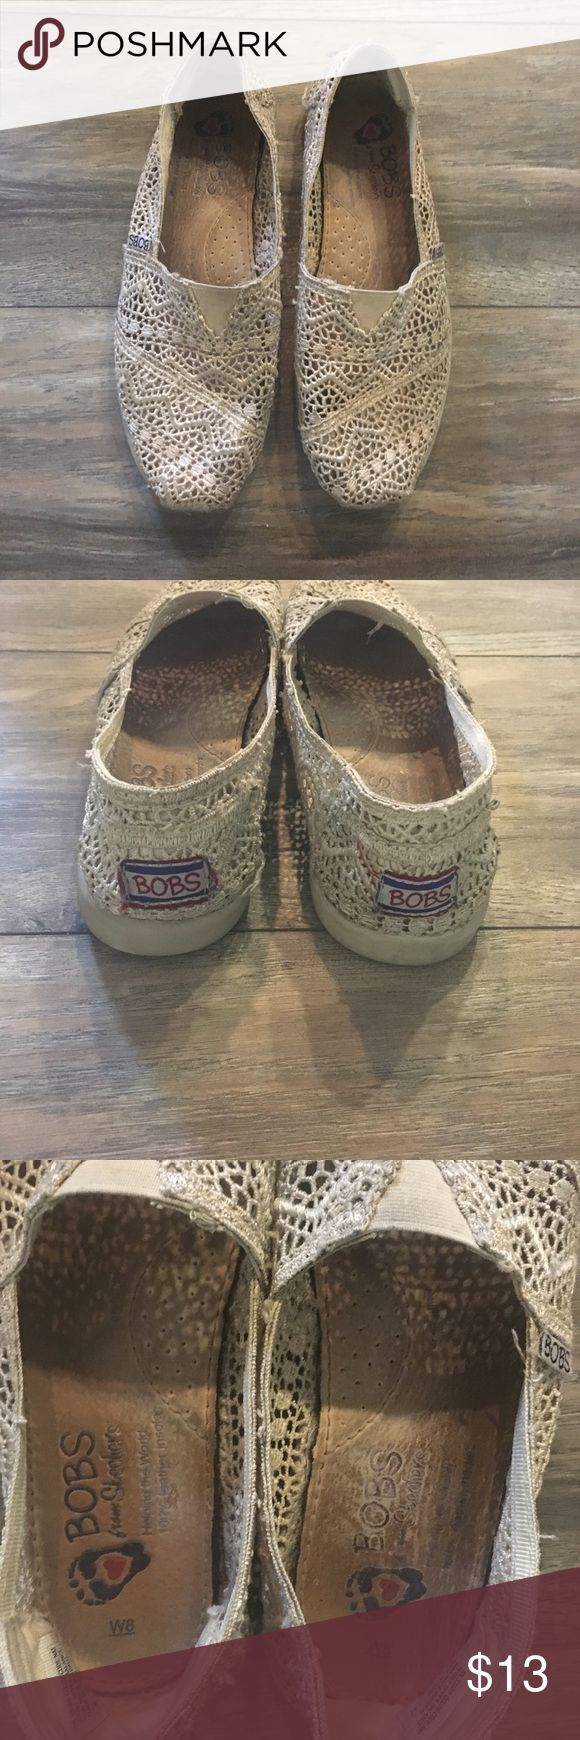 BOBS shoes Gorgeous and in great condition👍 Toms Shoes Flats & Loafers